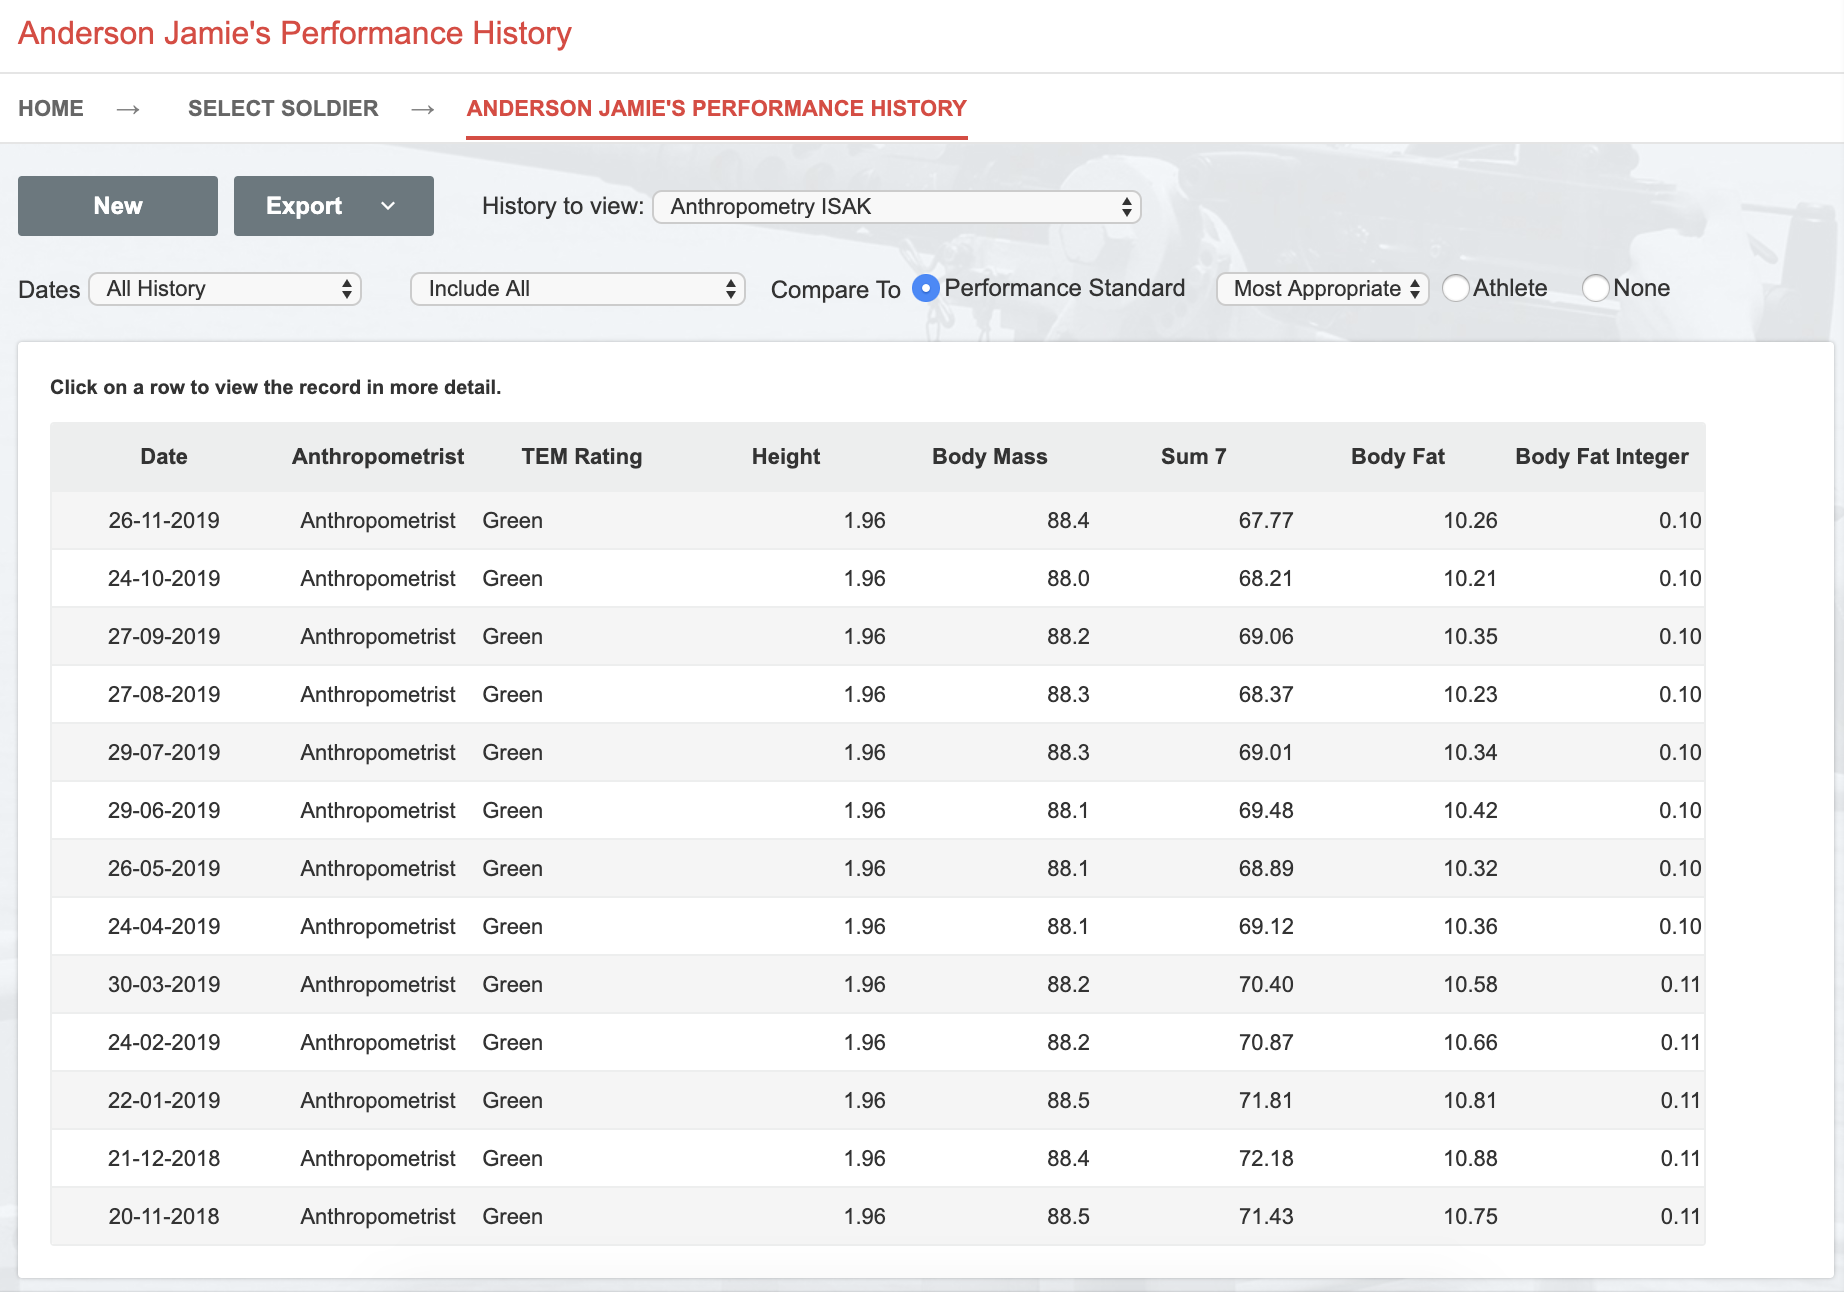 A screenshot showing an example of the performance history for an athlete's anthropometry data